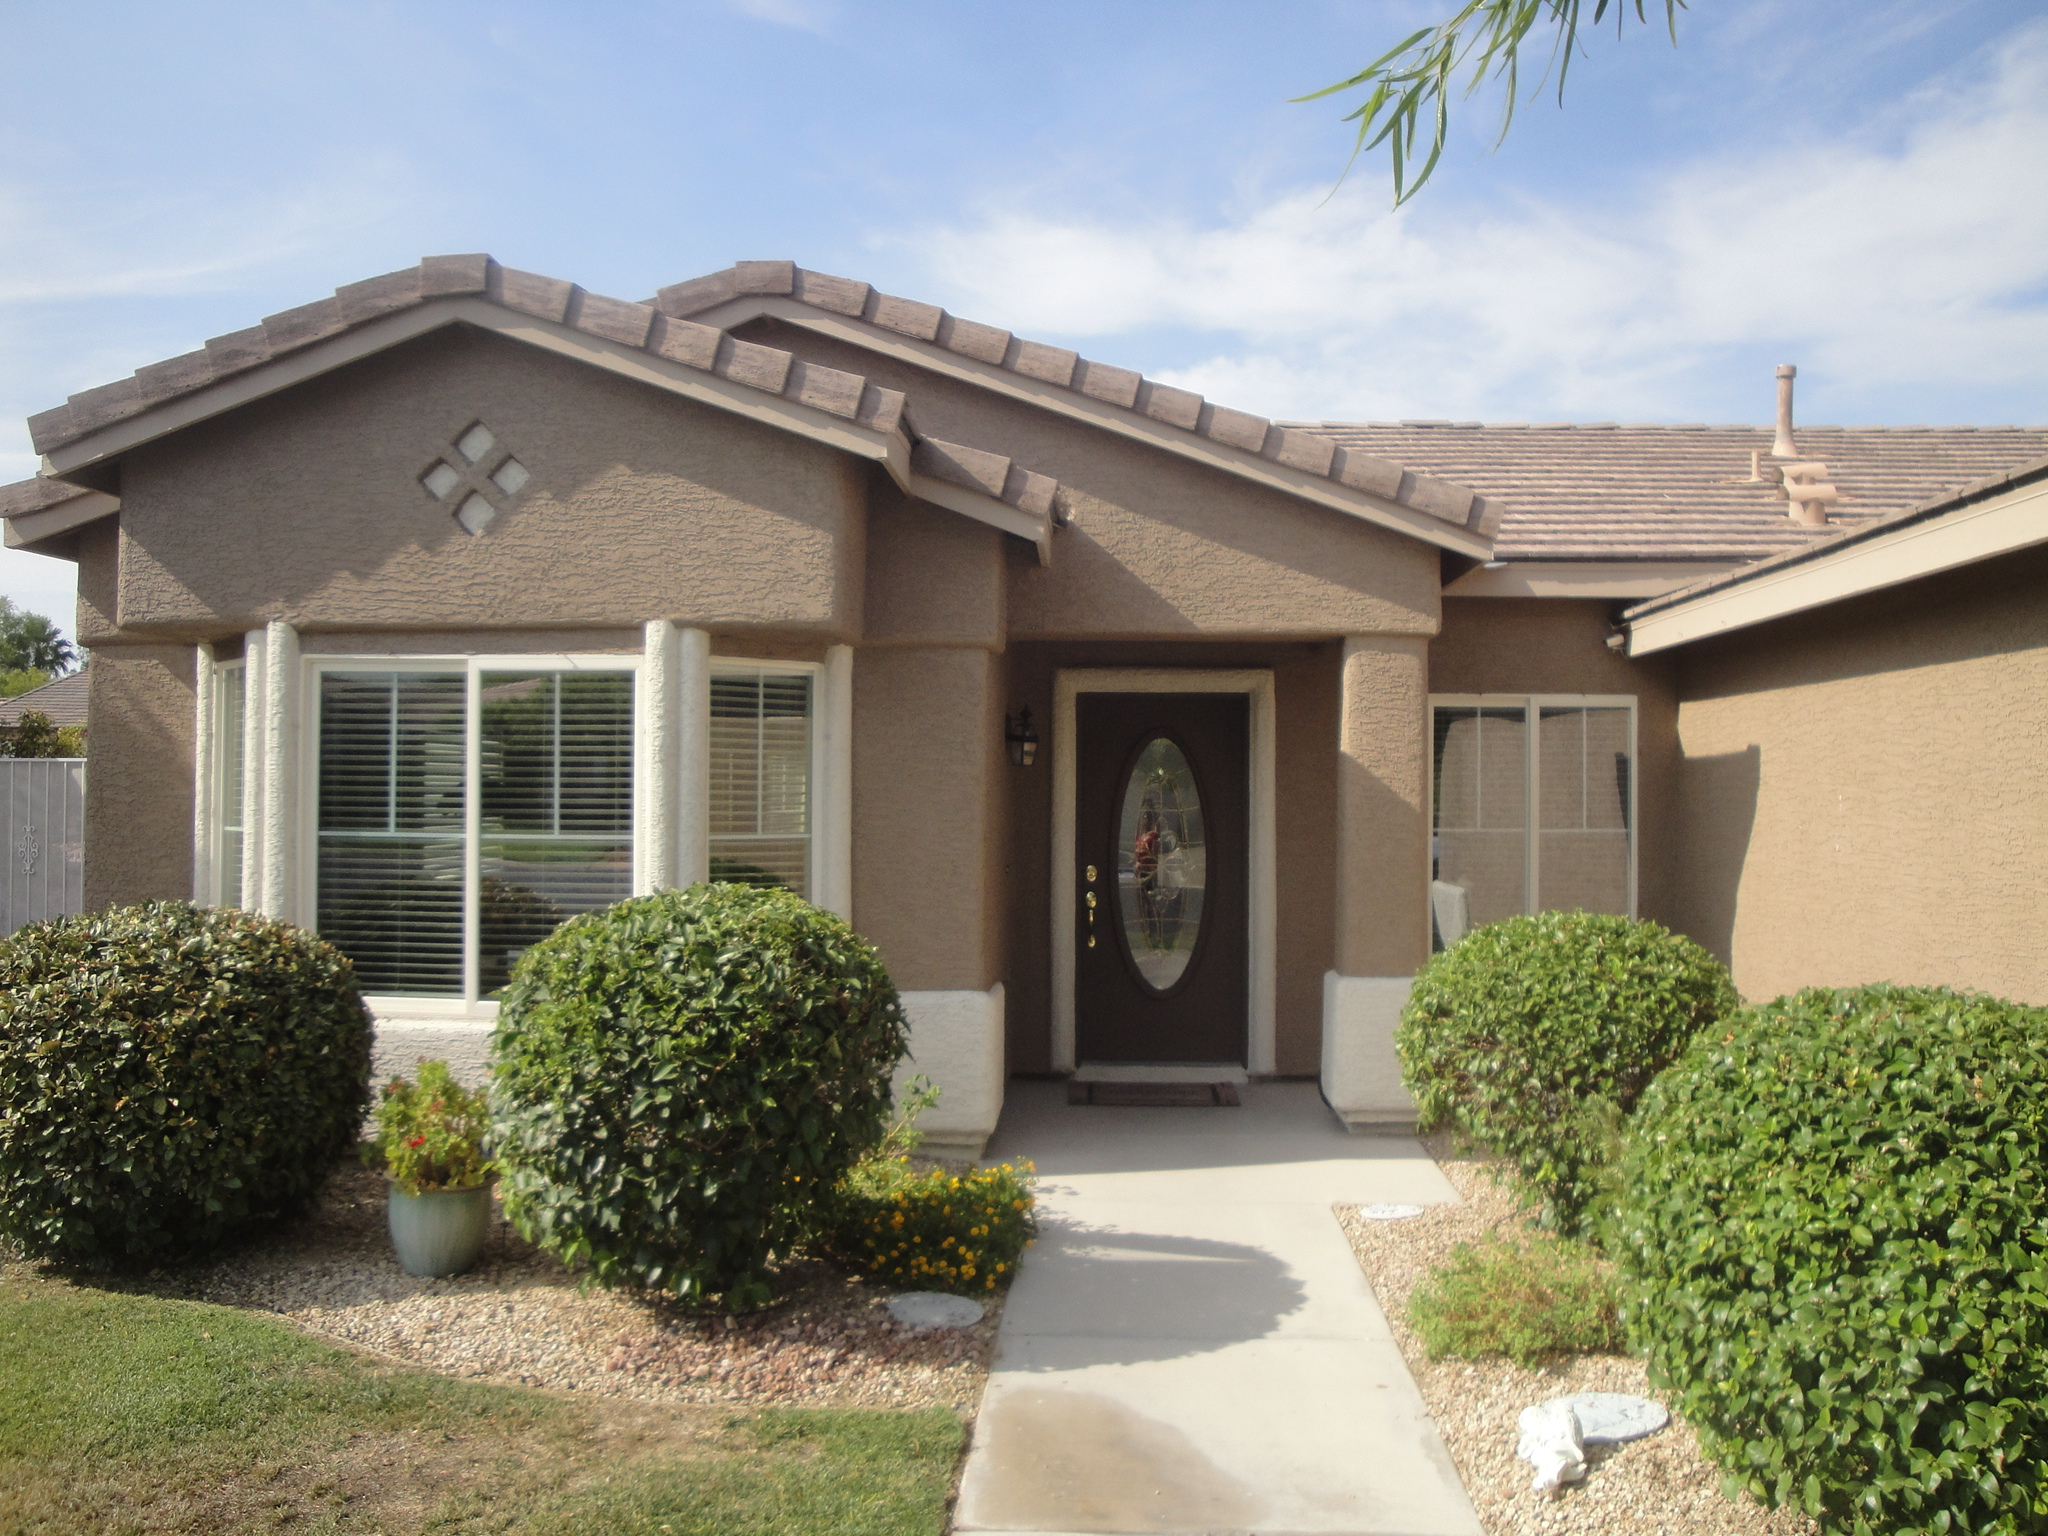 Single Family Home for Sale at 8224 Risty Sandstone Ct 8224 Rusty Sandstone Ct Las Vegas, Nevada 89131 United States